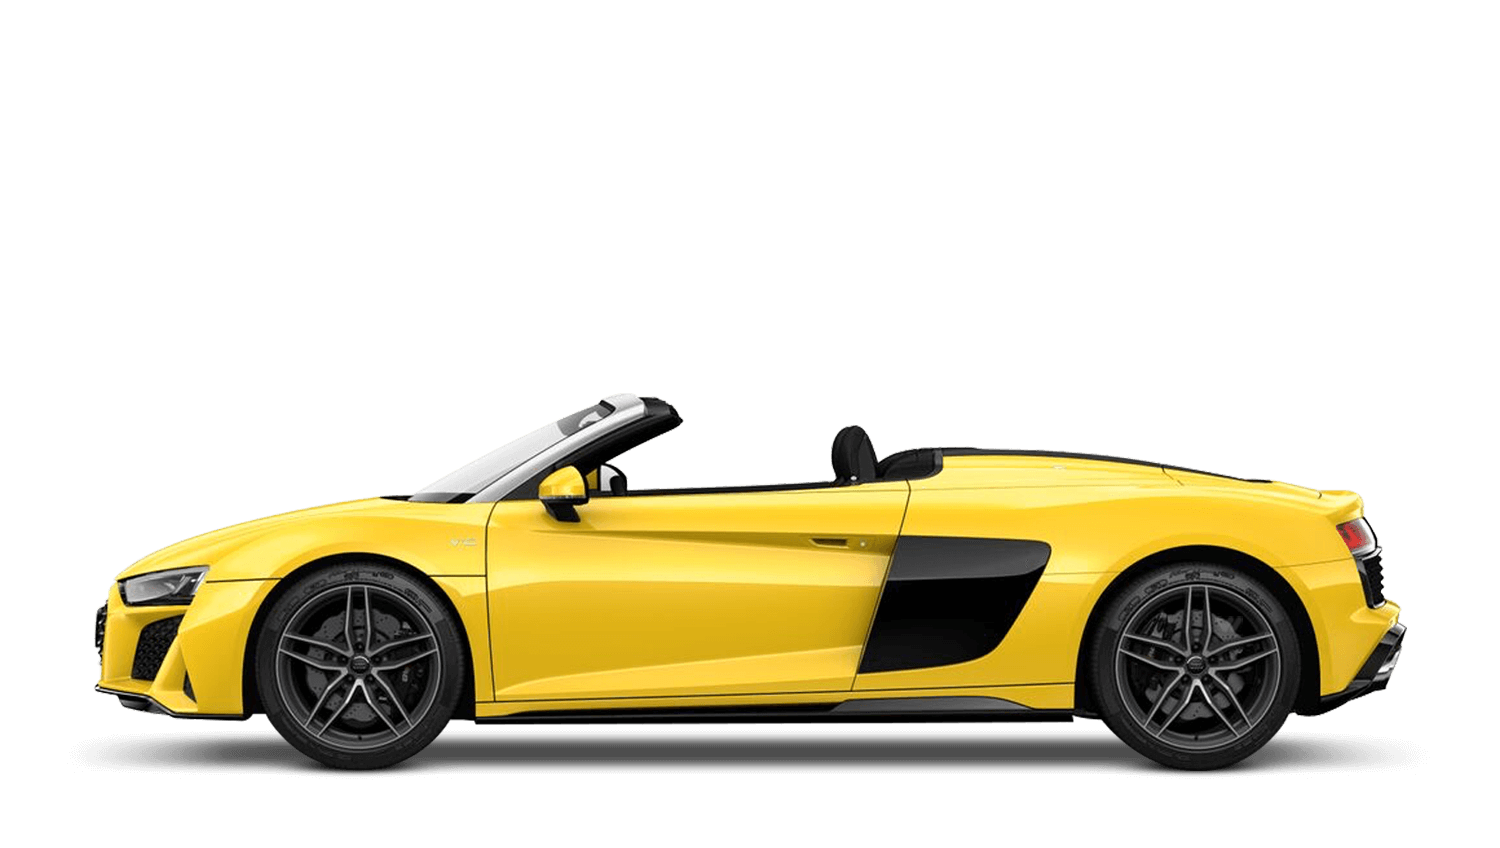 Vegas Yellow (Solid) Audi R8 Spyder